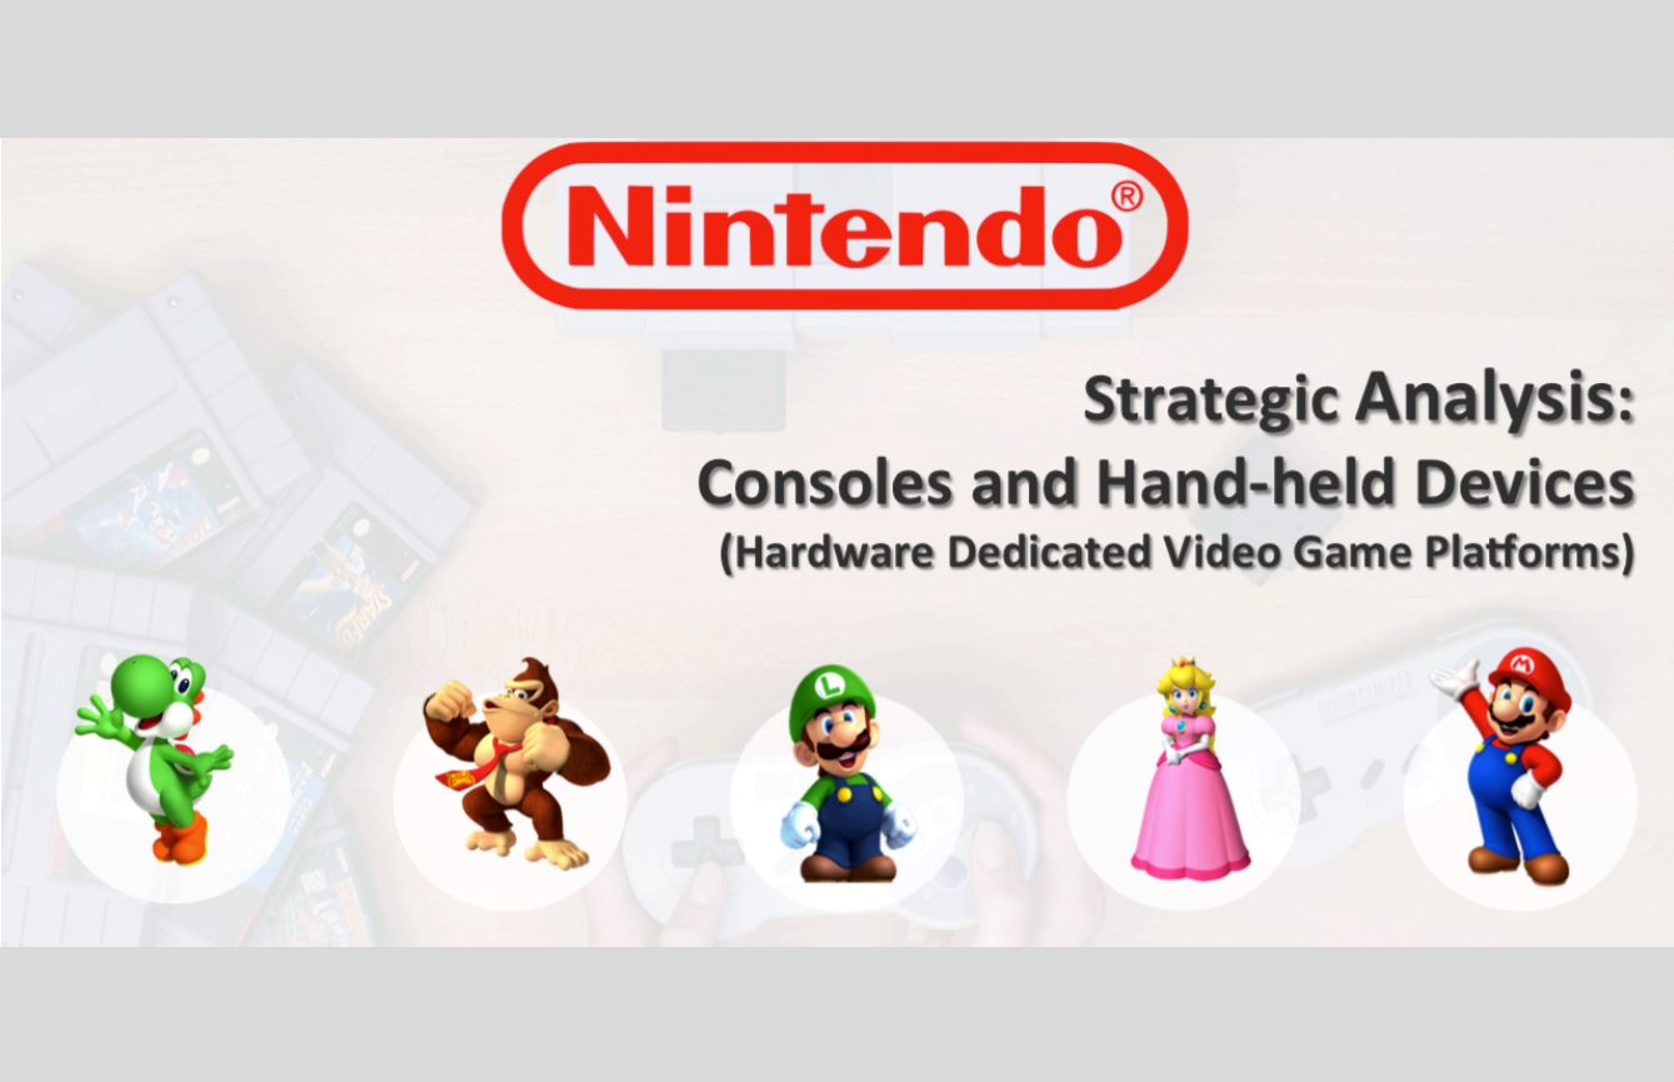 SWOT Analysis of Nintendo